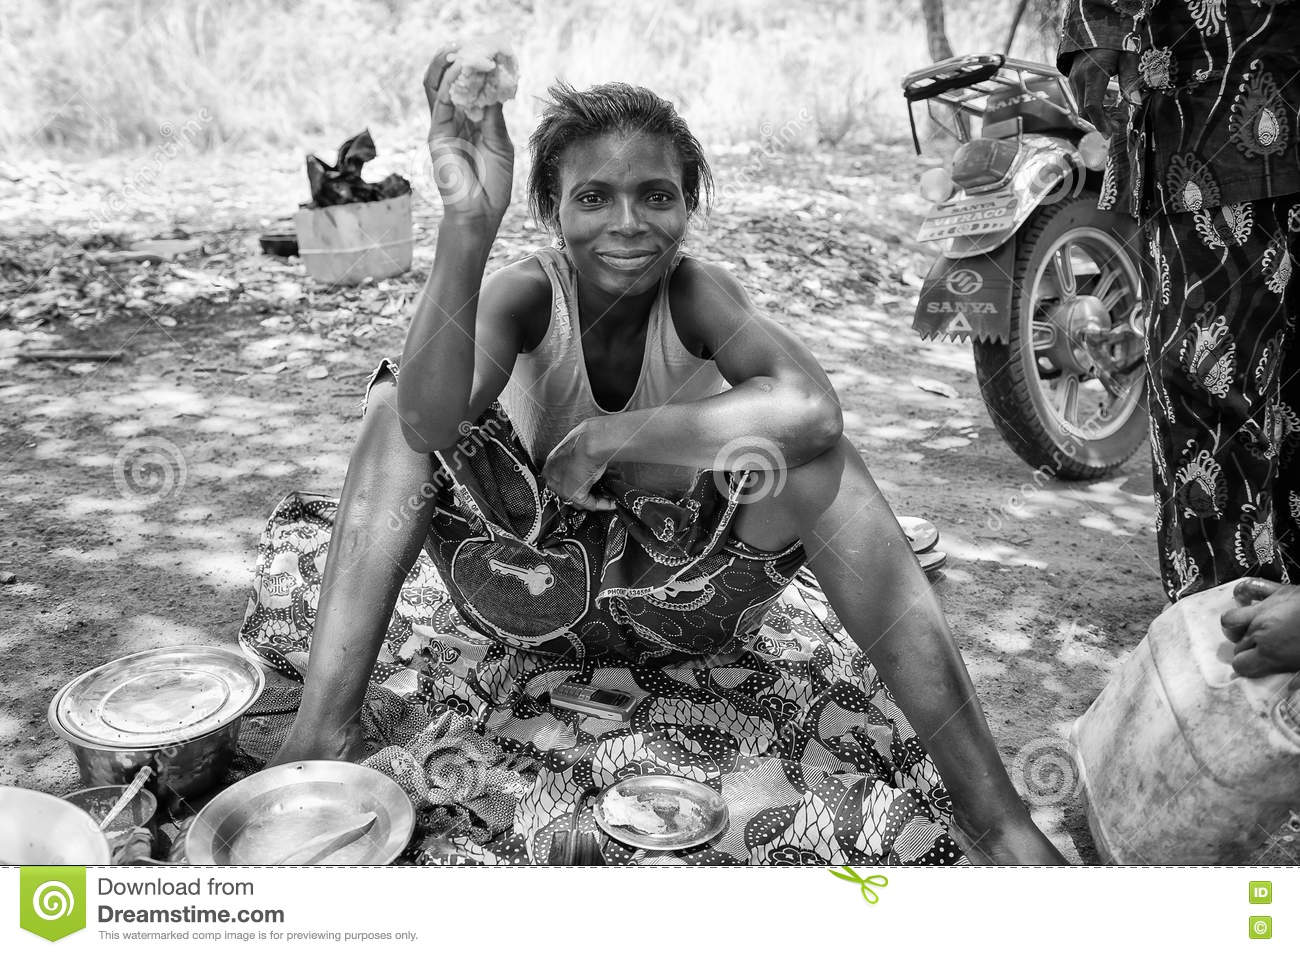 Real People In Togo (Black And White) Editorial Stock